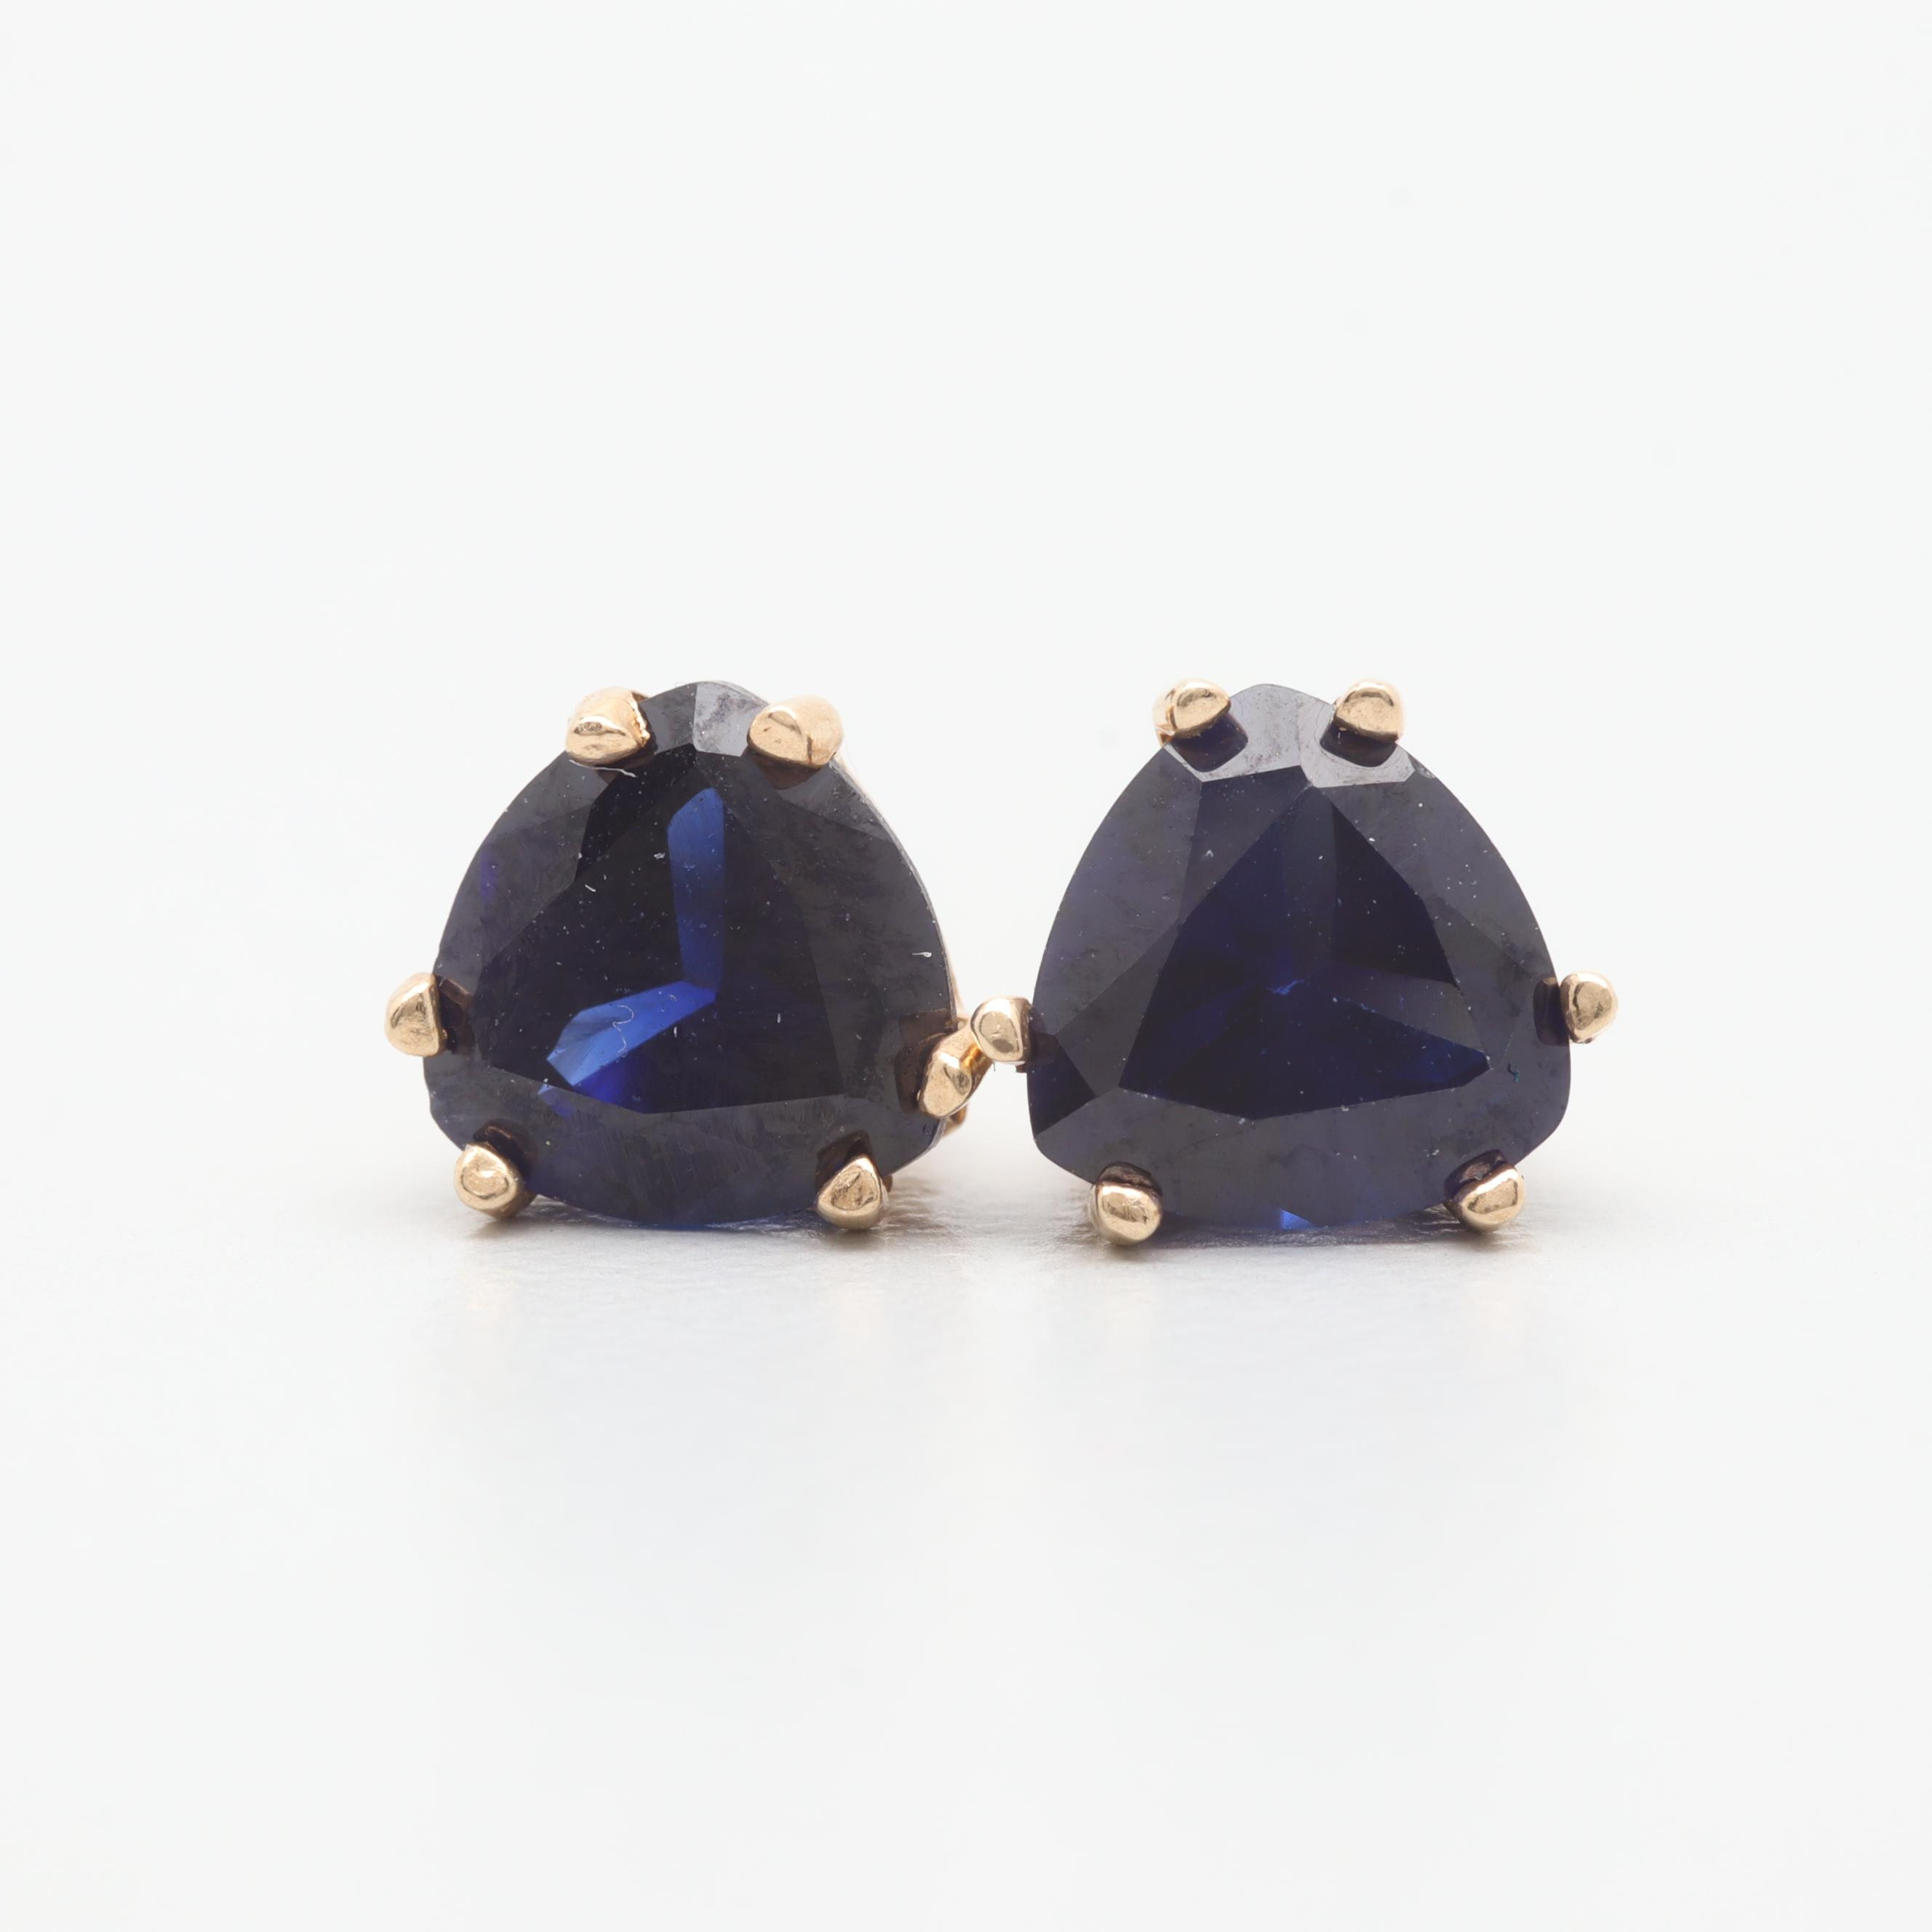 10K Yellow Gold Synthetic Sapphire Stud Earrings